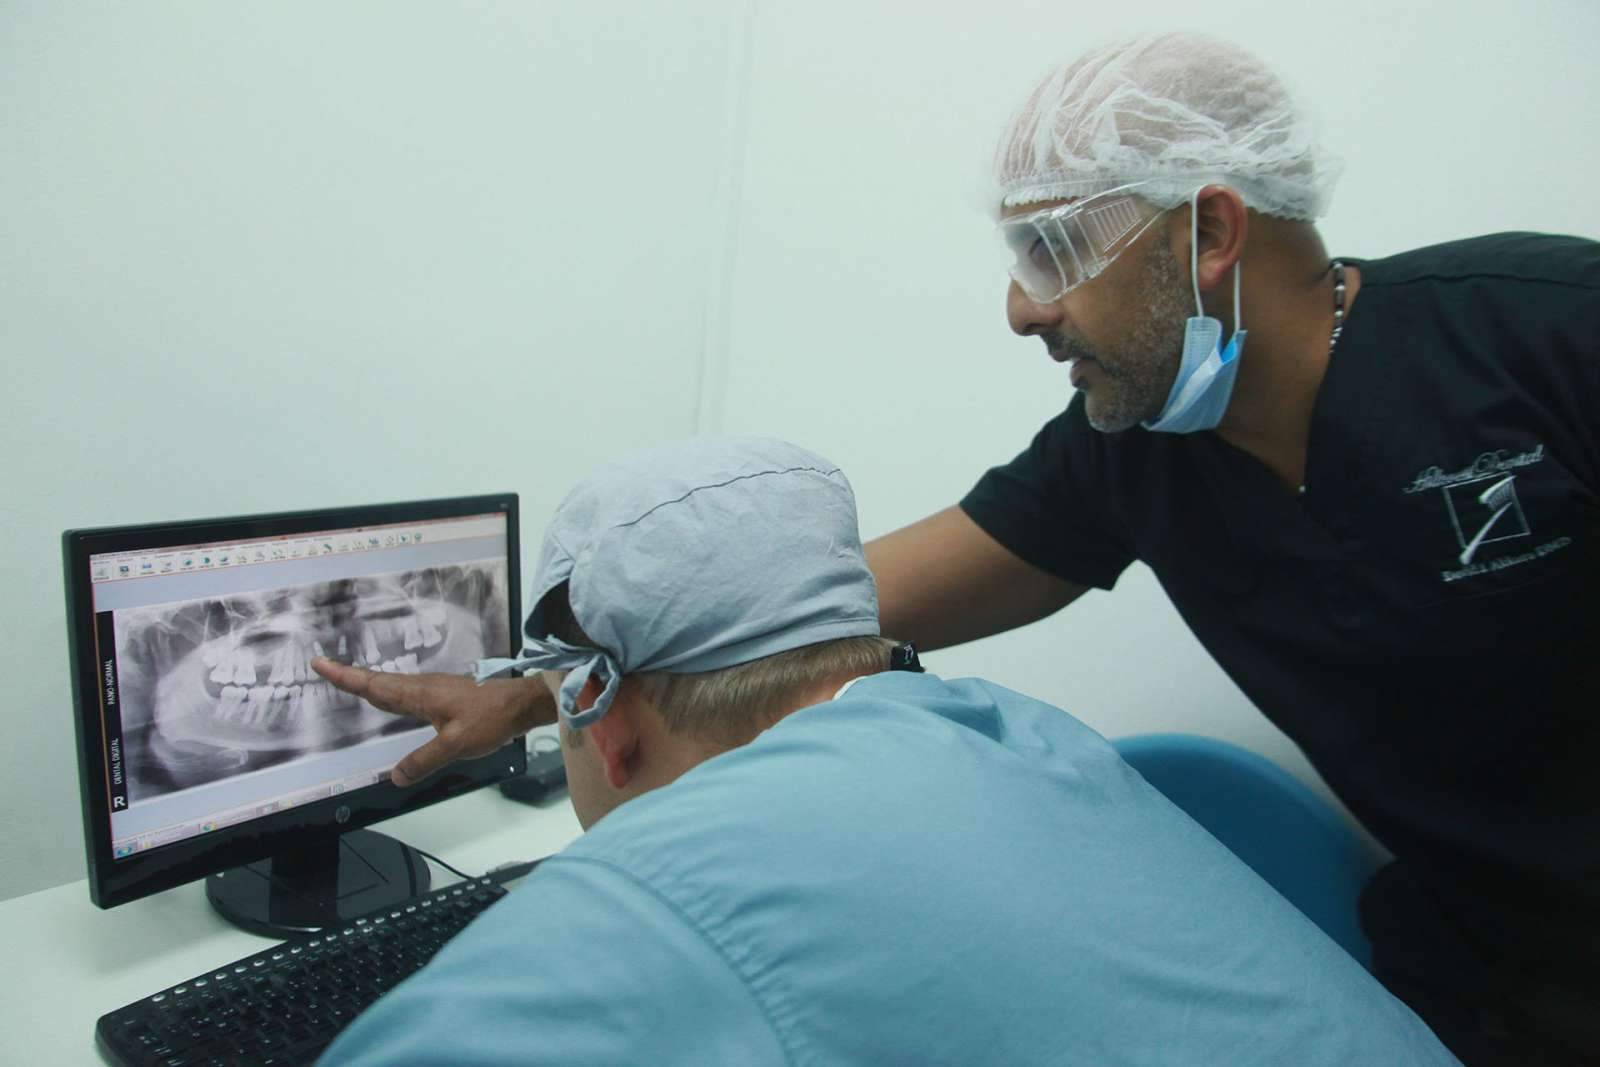 Trinon Collegium Practicum dental implant courses